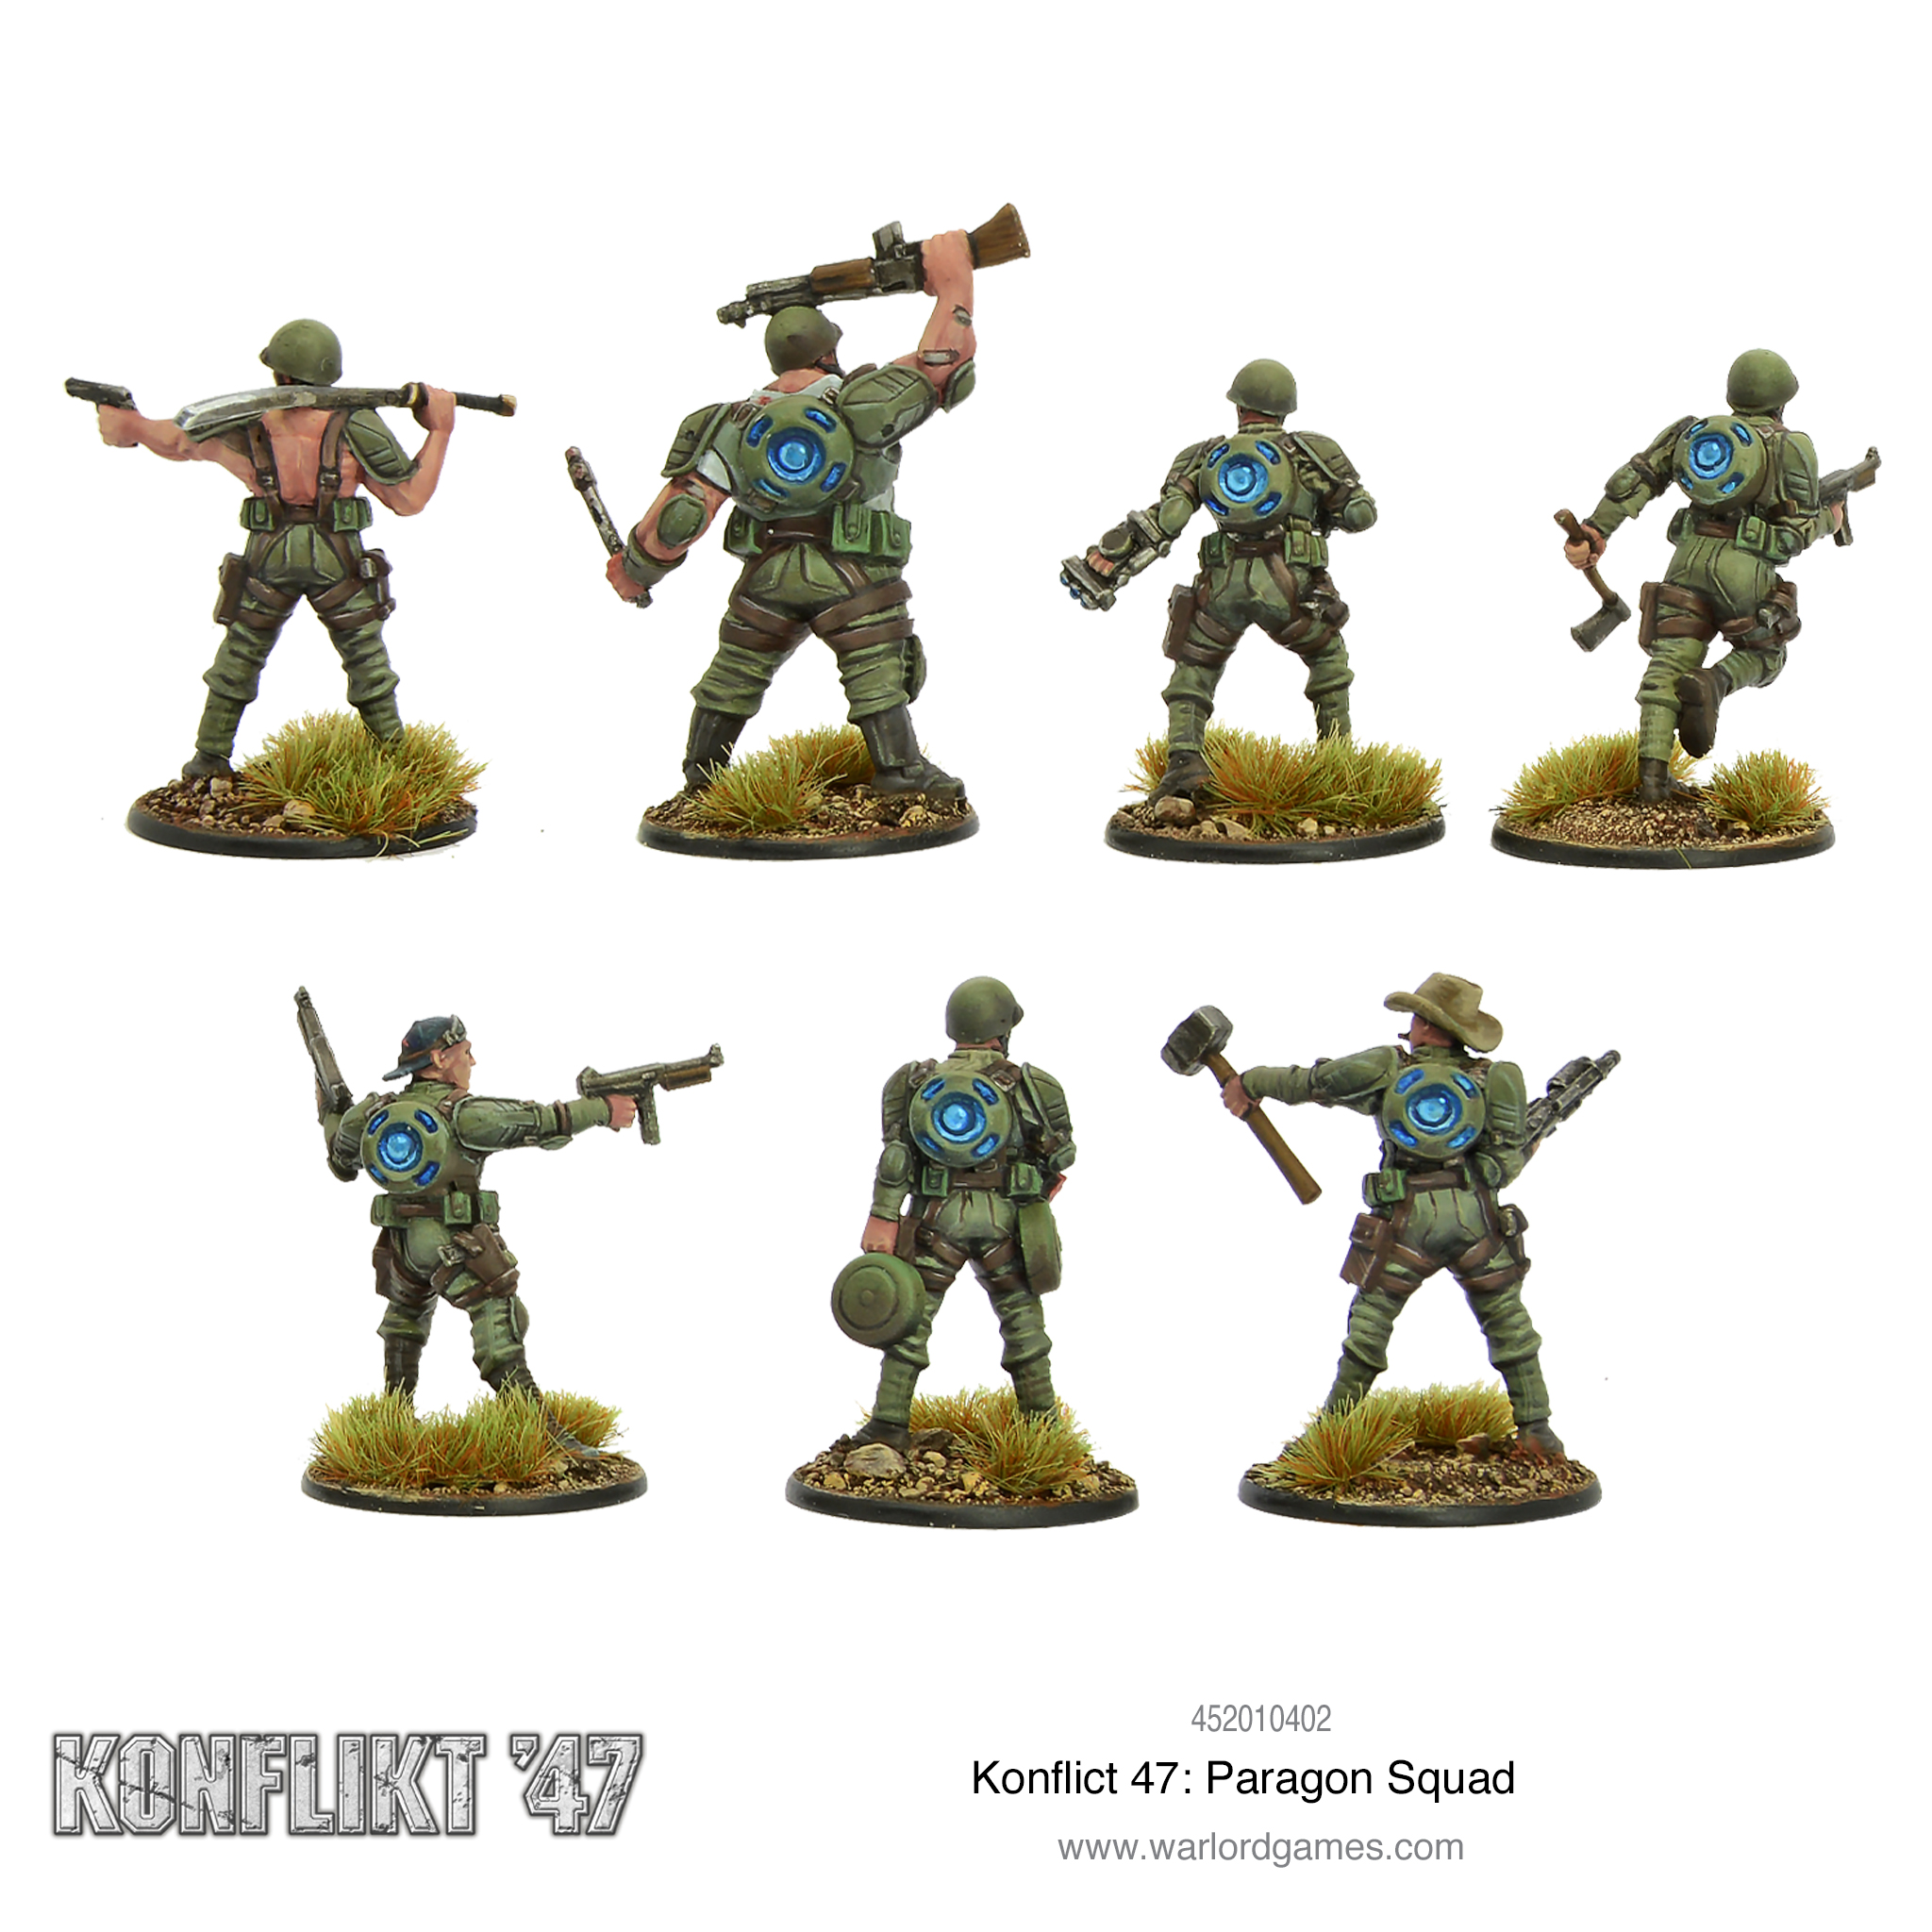 Konflikt' 47 Paragon Squad Rear View